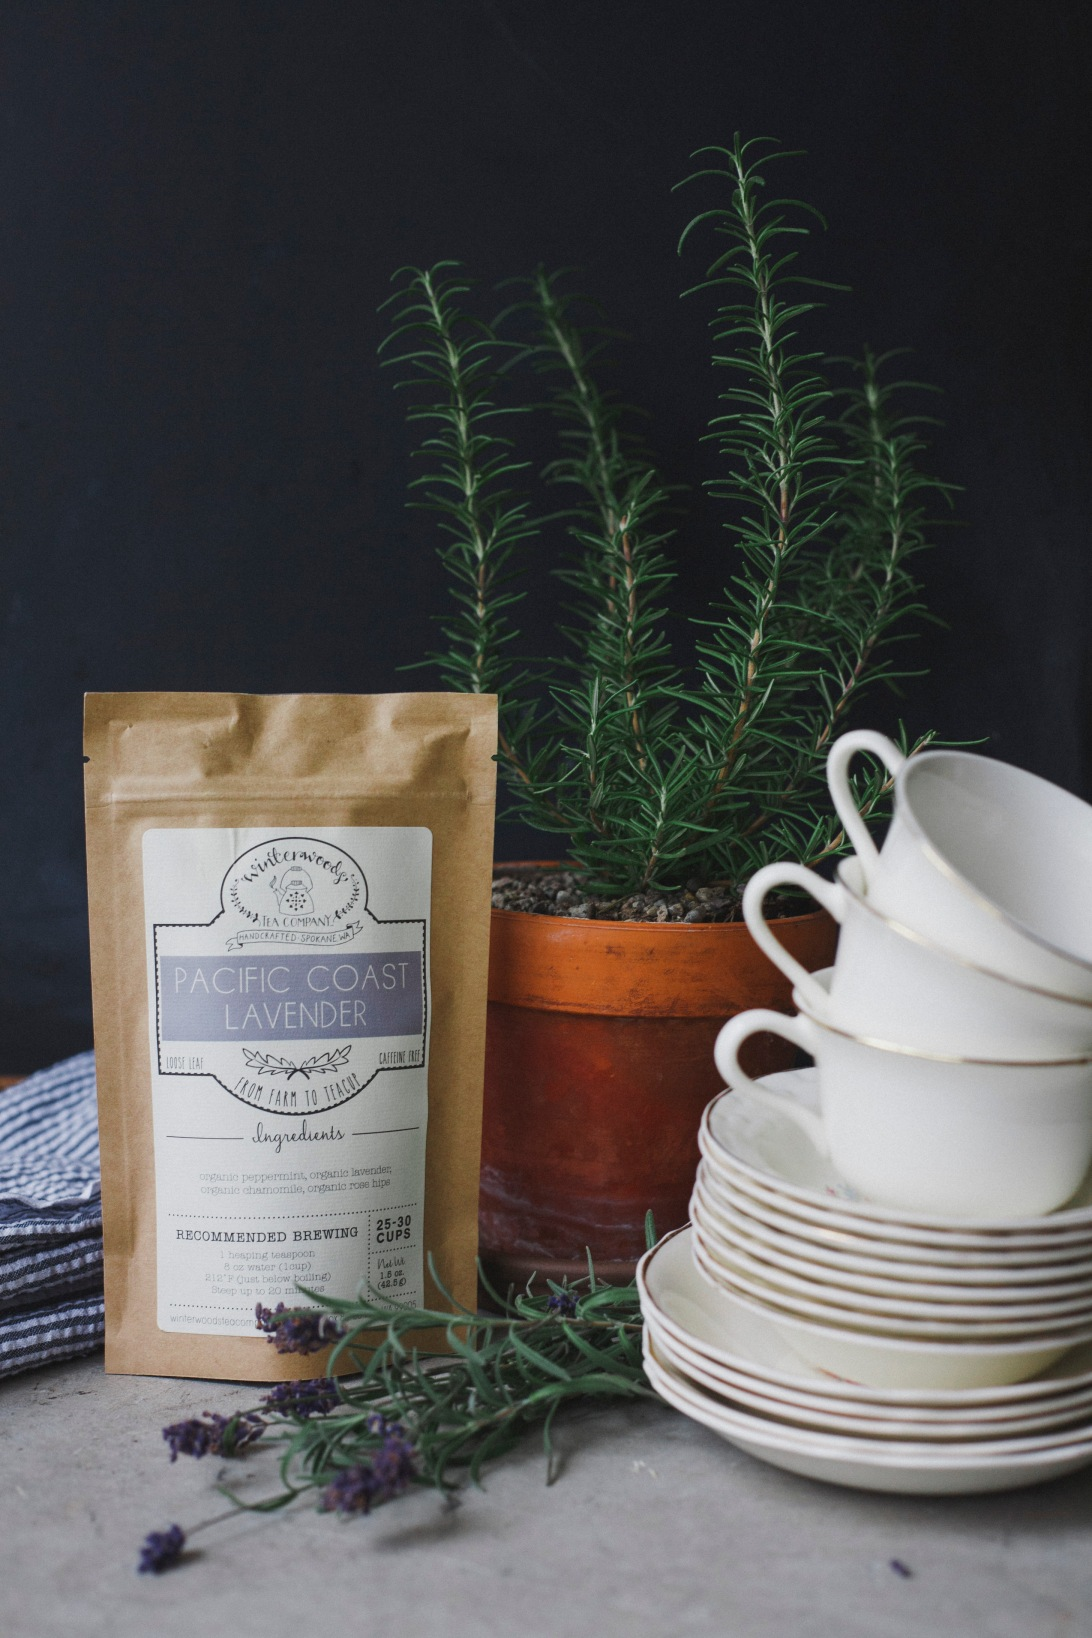 Pacific Coast Lavender | Winterwoods Tea Company | Product Styling and Photography Dana Muchow Design